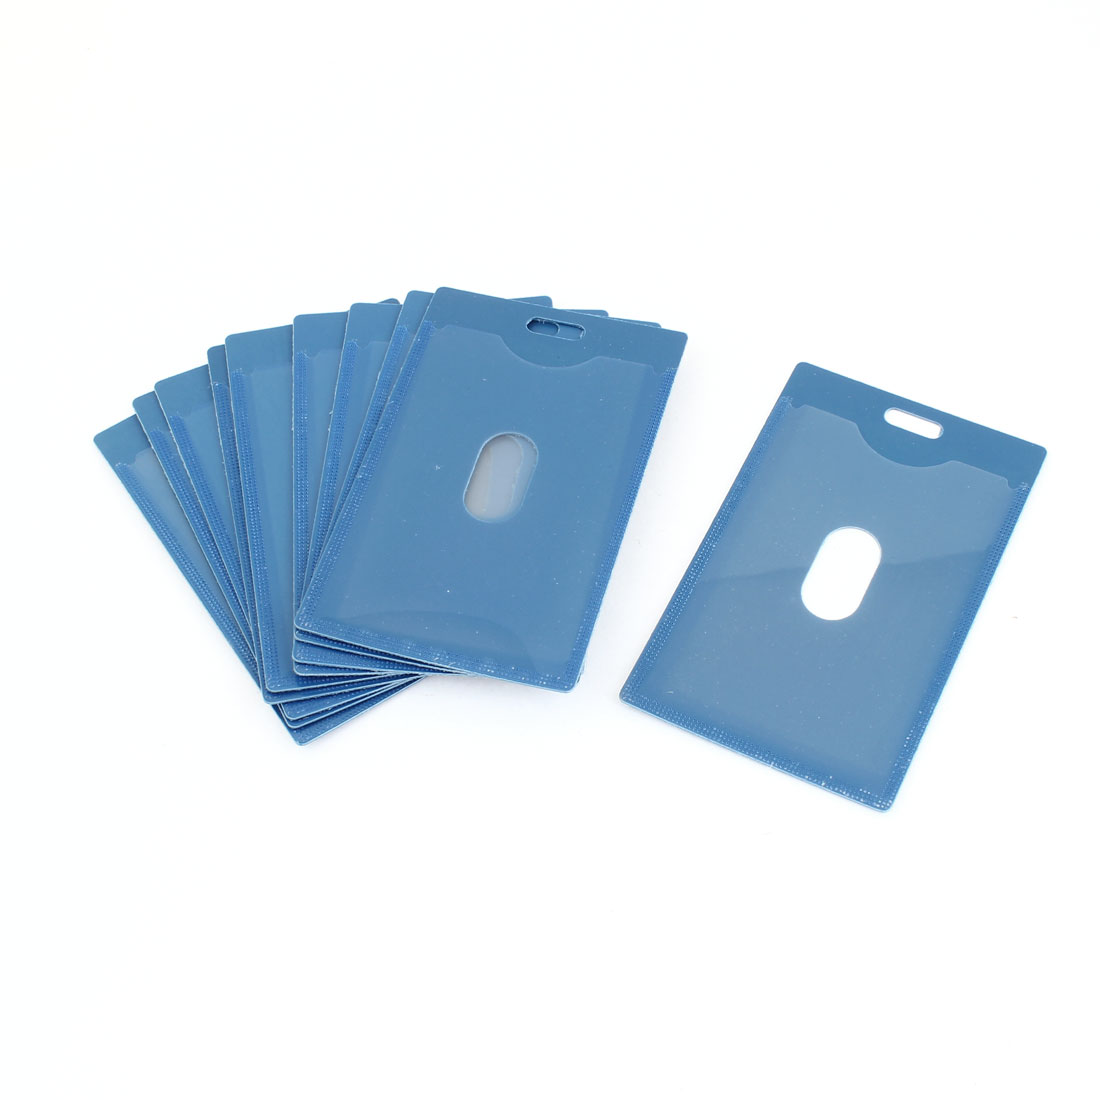 10 Pieces Blue Plastic Vertical Name Badge ID Holder for Office Worker